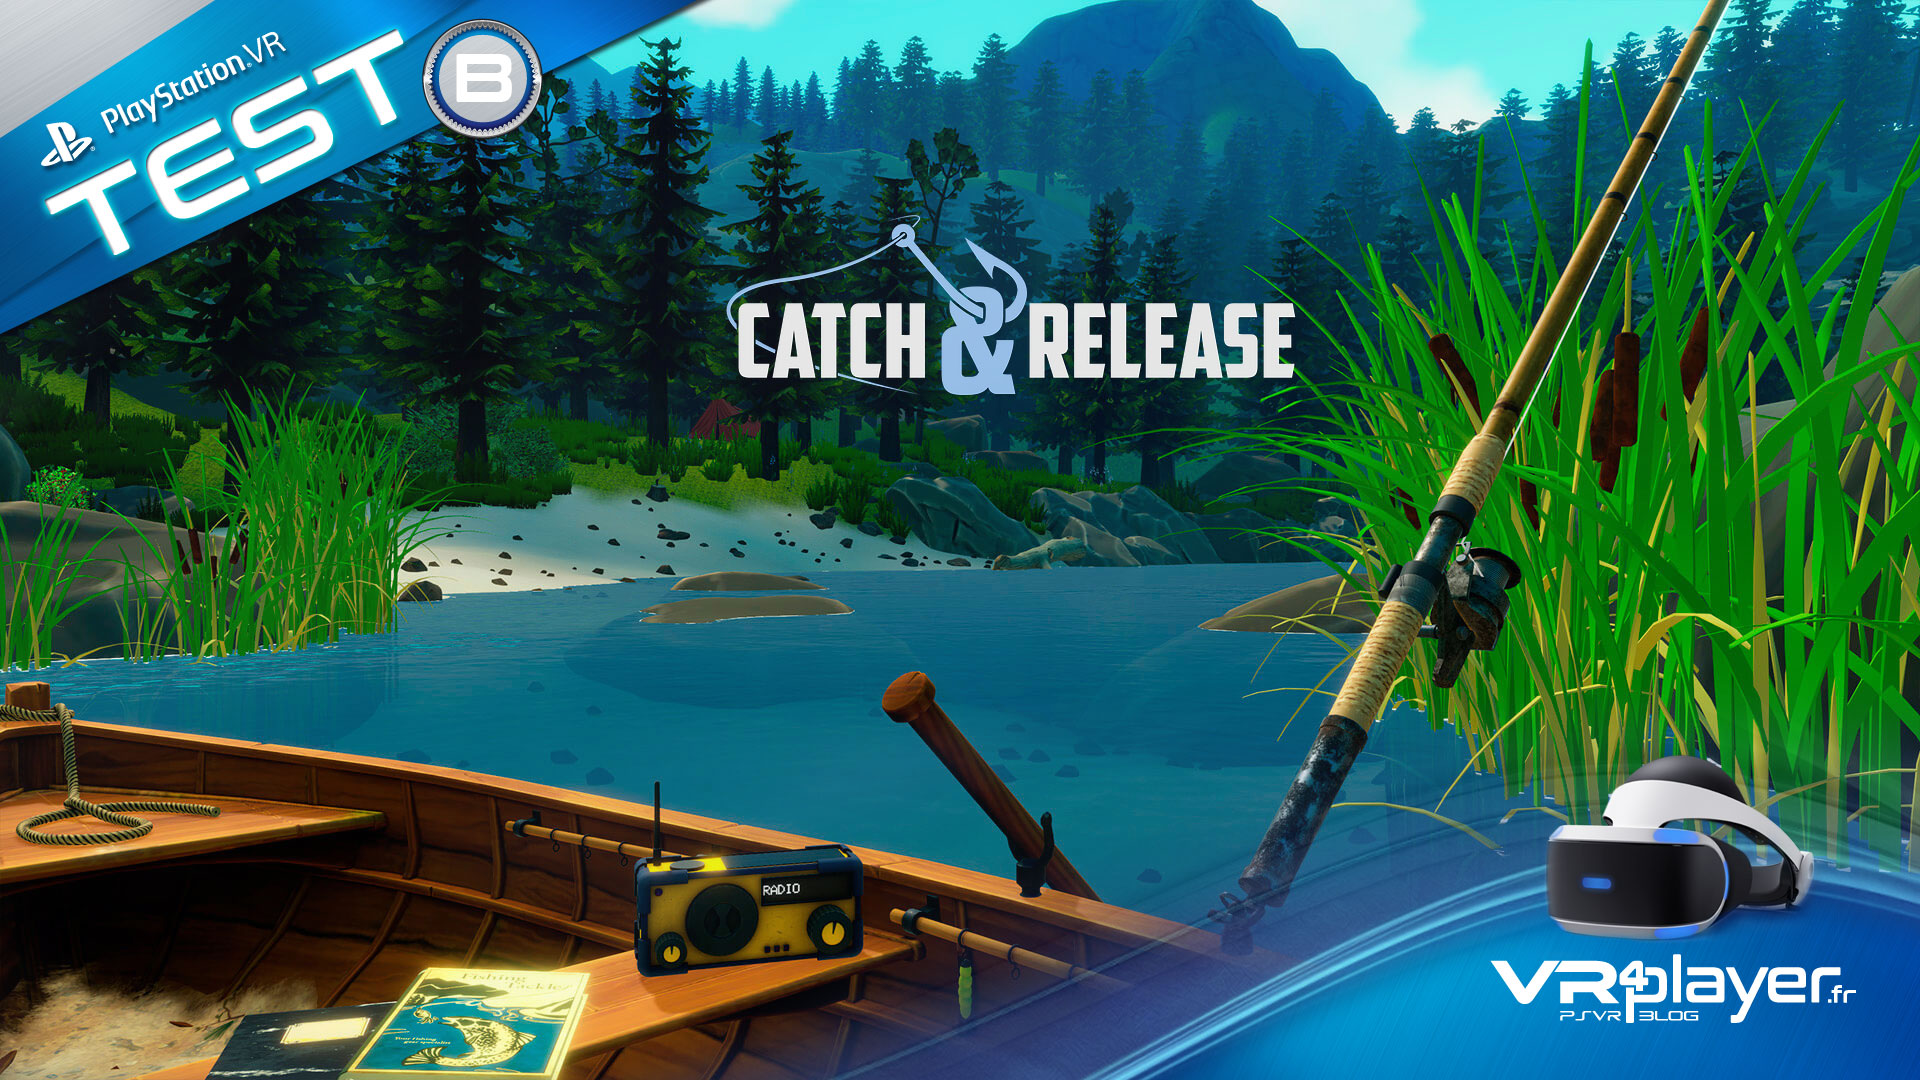 Catch and Release sur PSVR, test et interview vr4player.fr